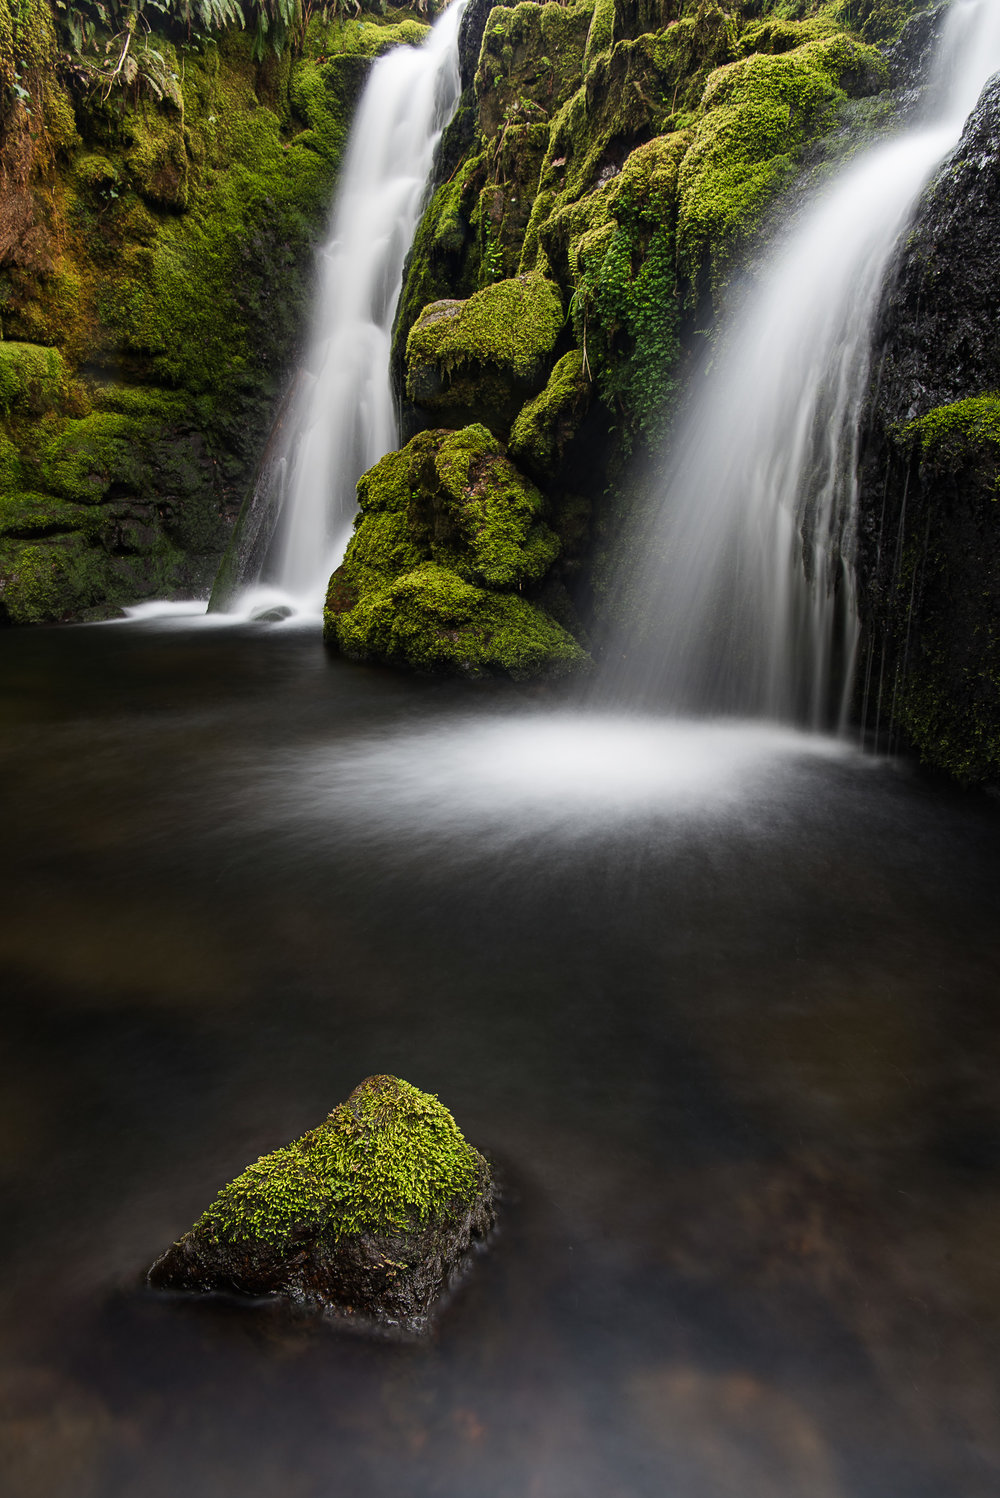 Venford Falls - Nikon D750, Nikkor 24-70 f/2.8 VR at 24 mm, f/16, 10 seconds, ISO 100, Lee Filters Polariser.